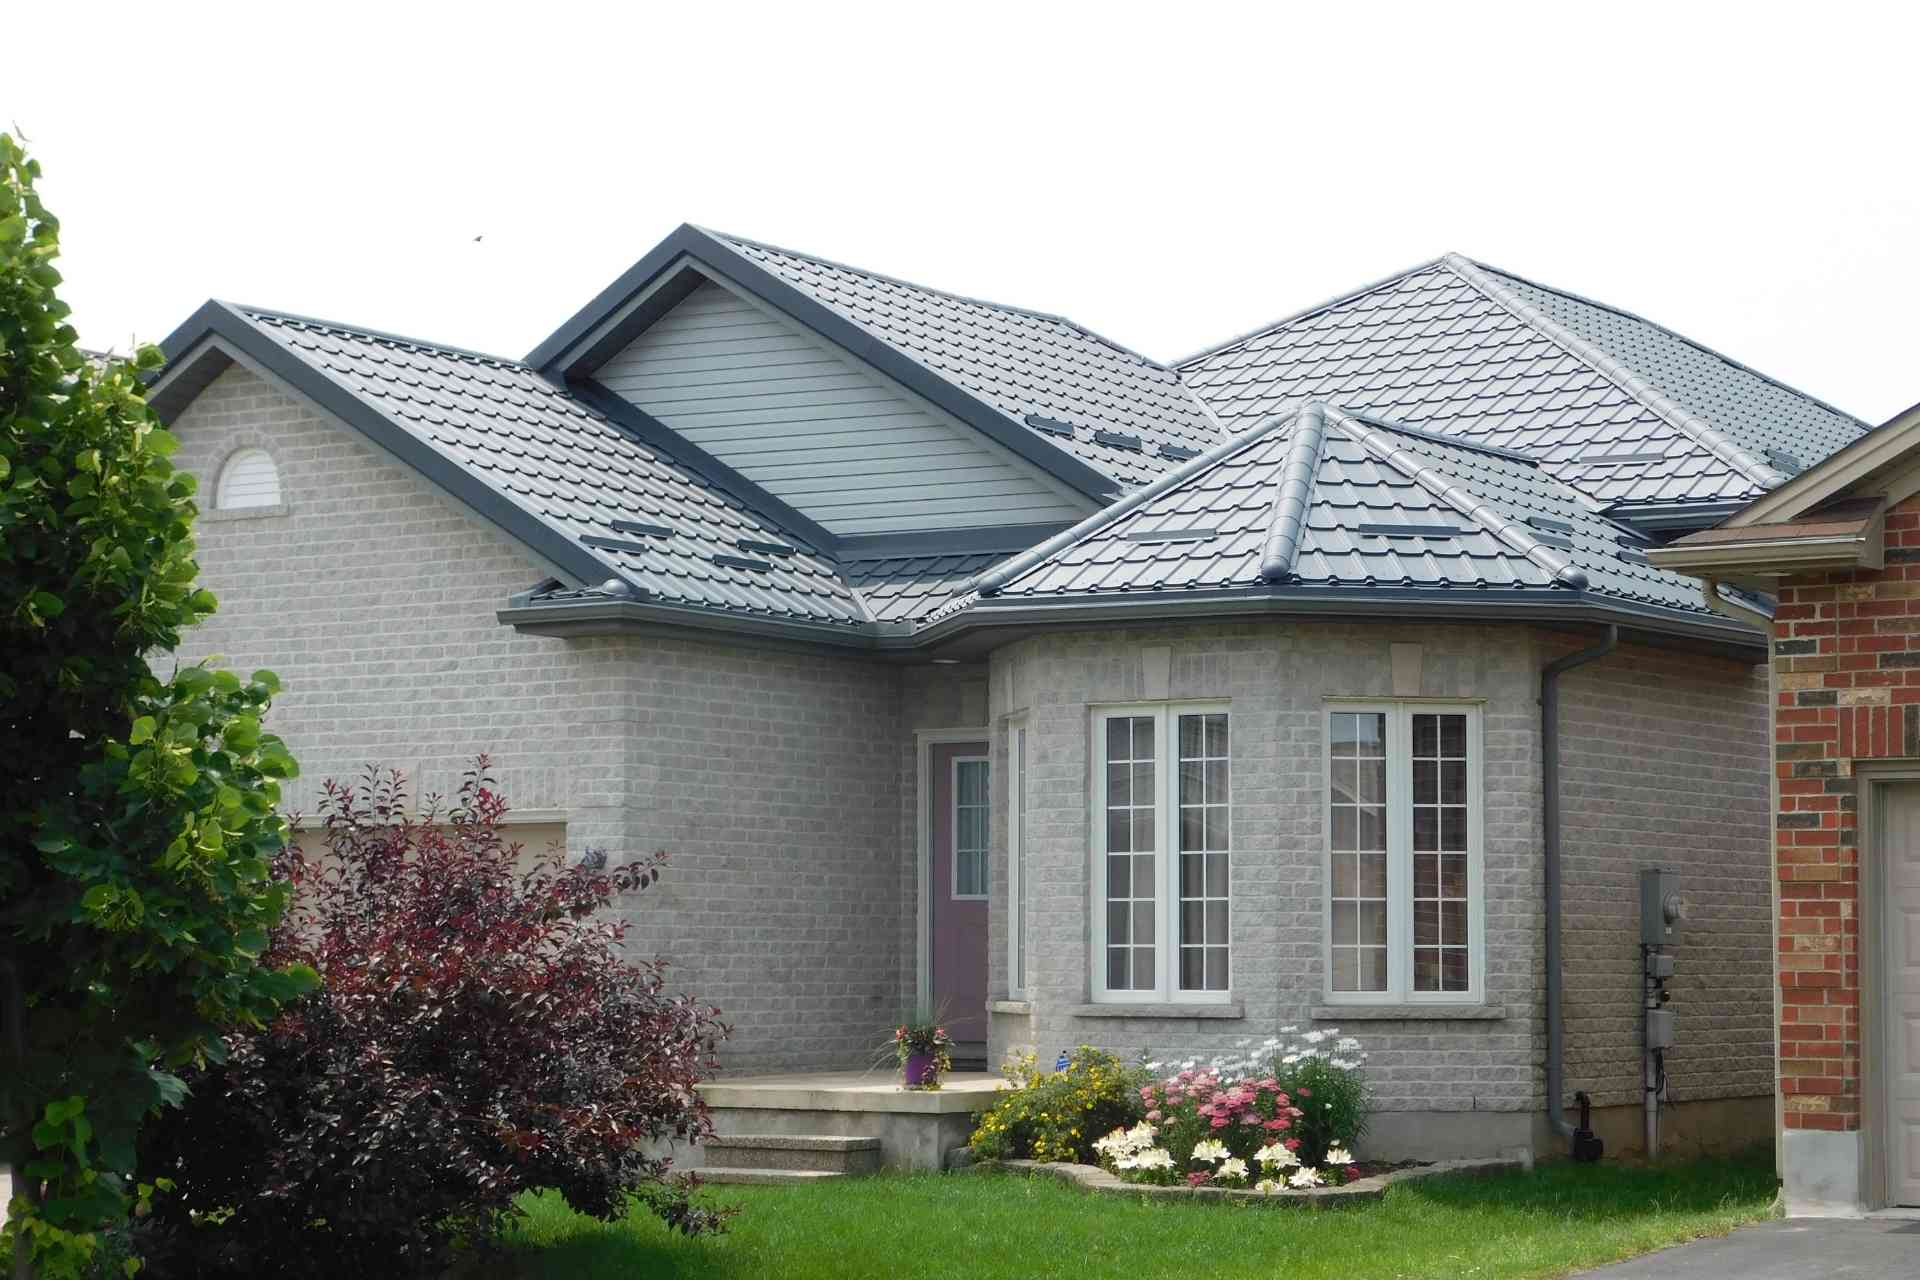 How Do You Maintain a Roof?